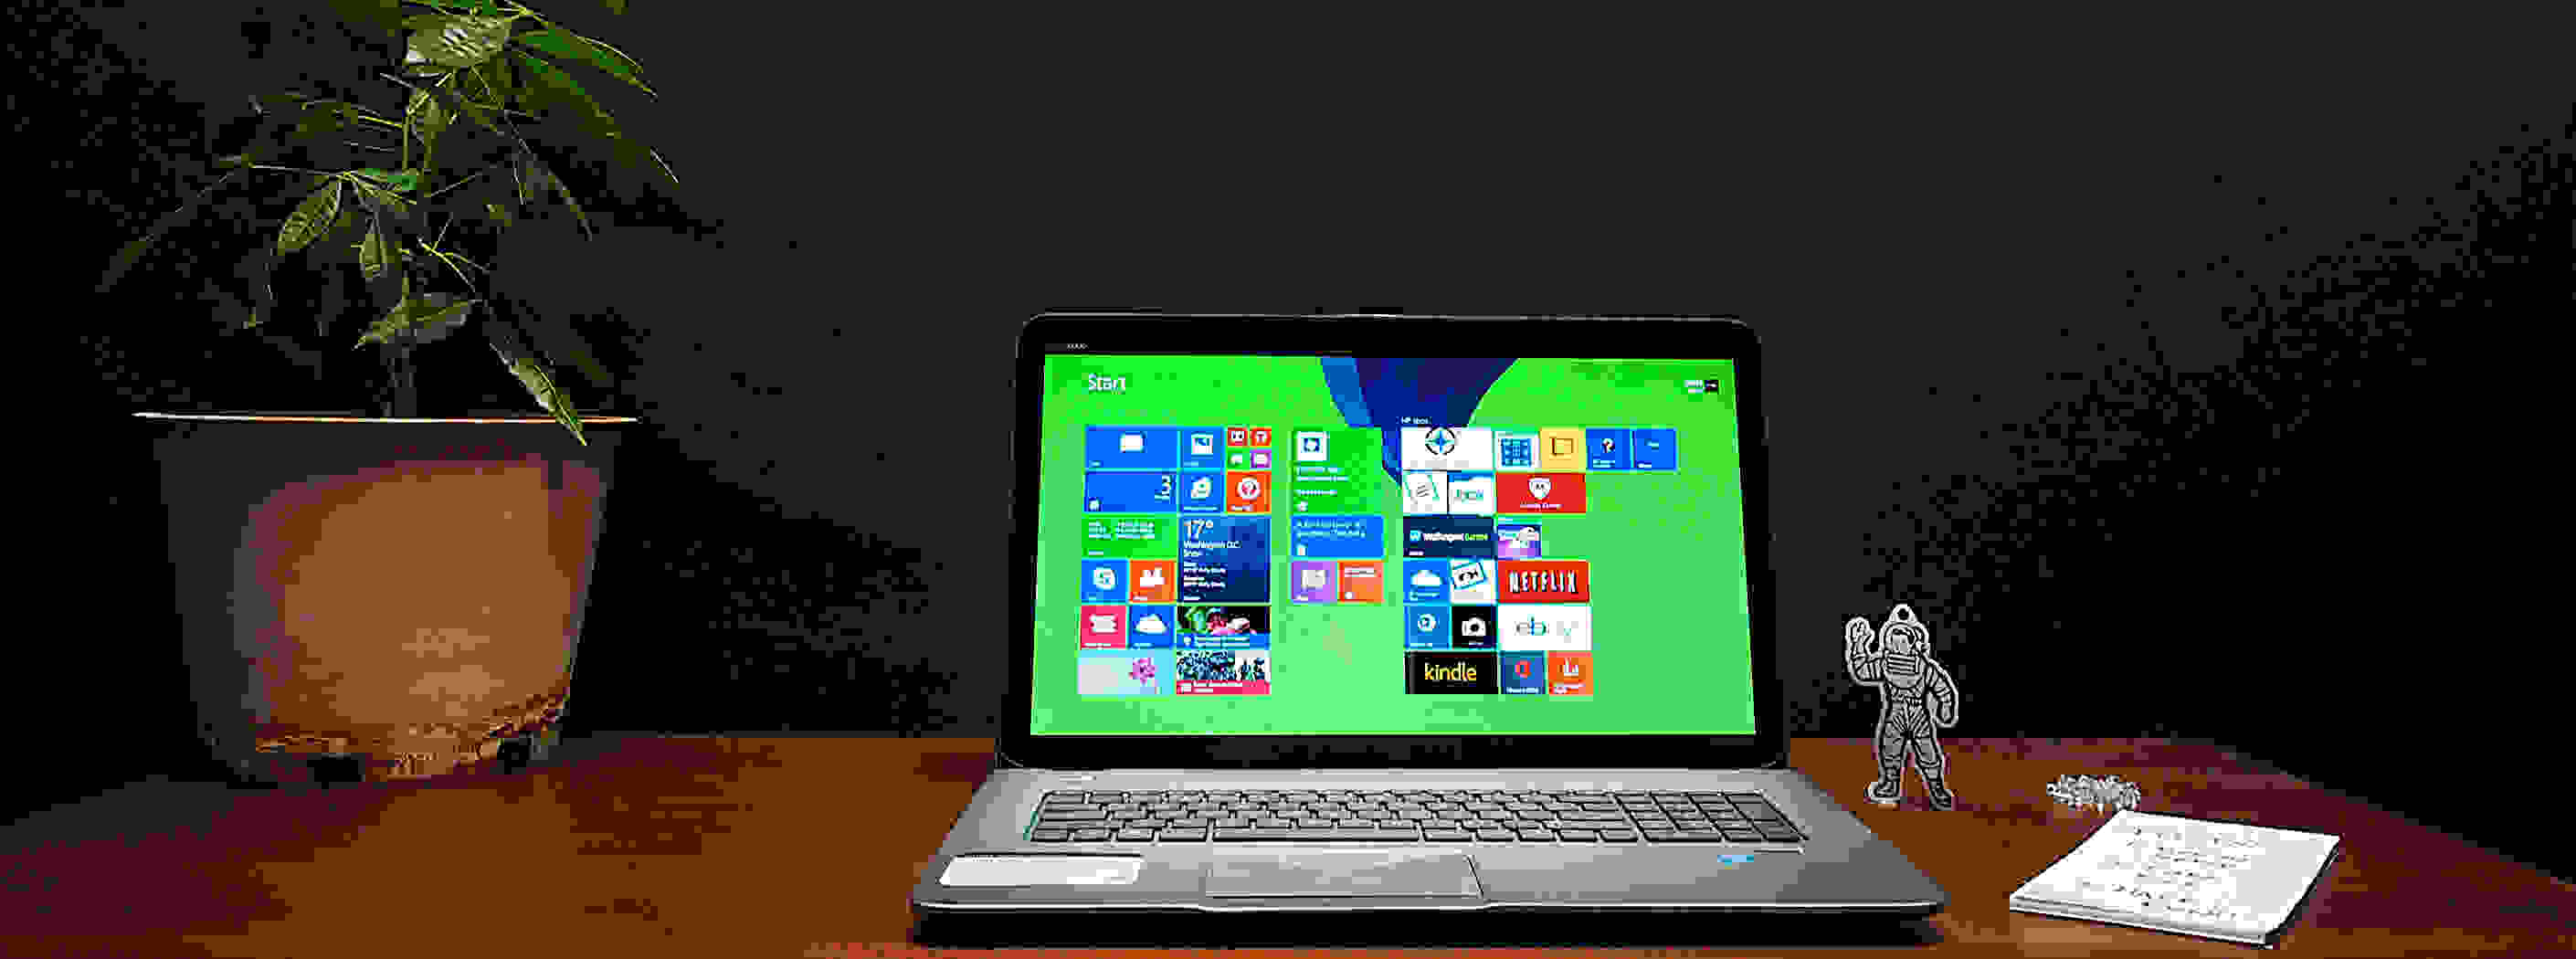 The HP Envy TouchSmart 17